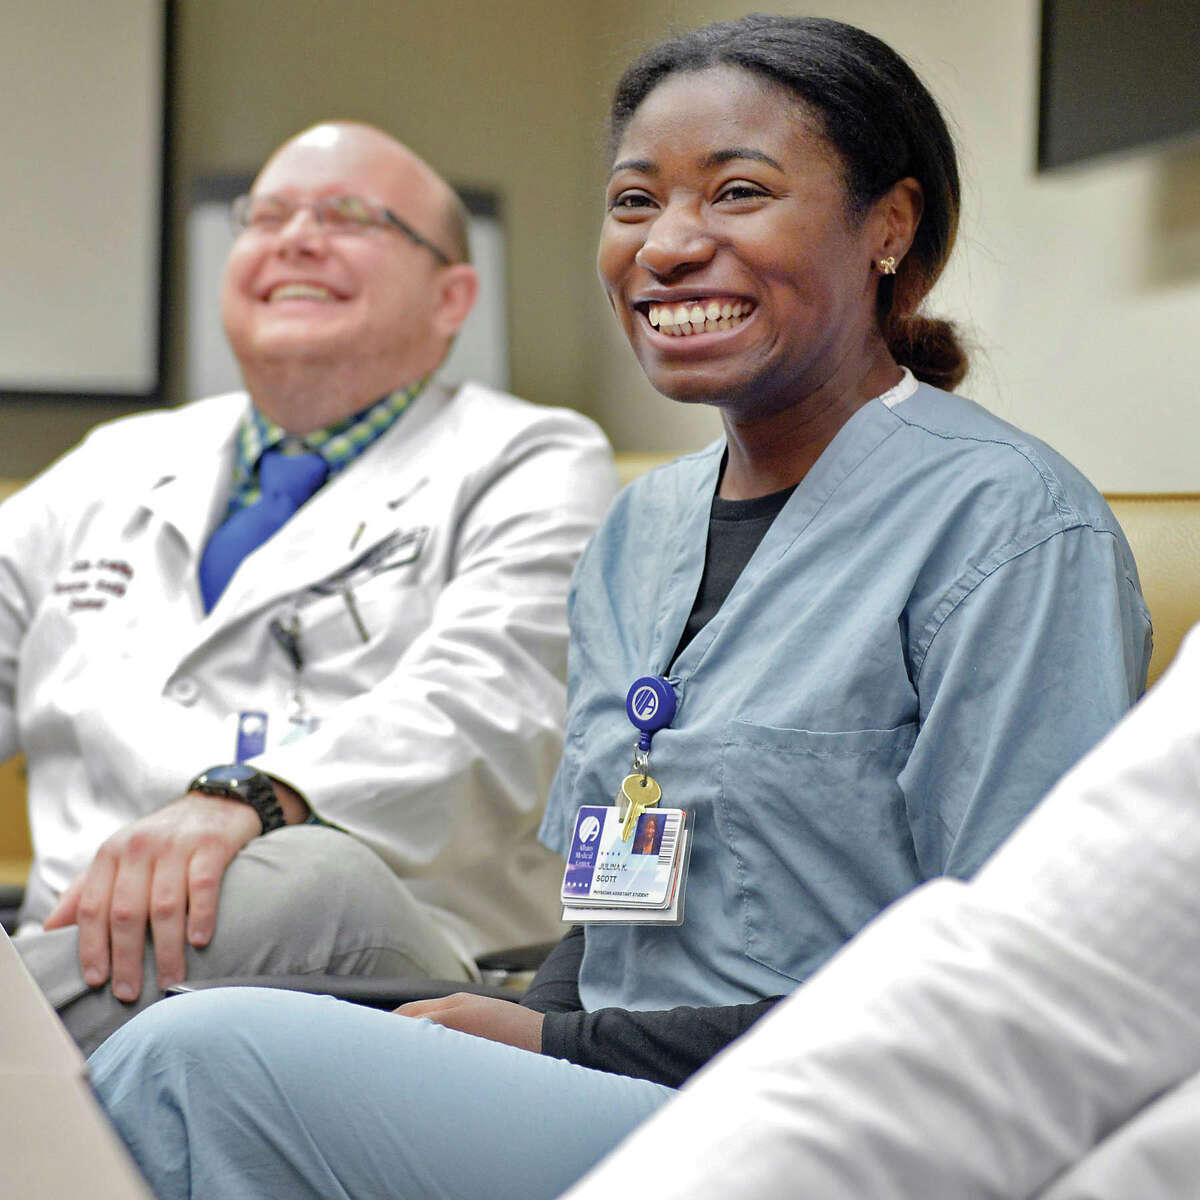 Physician assistant student Julina Scott, center, recounts experiences in the Albany Medical College's Standardized Patient program Thursday March 19, 2015 in Albany, NY. (John Carl D'Annibale / Times Union)